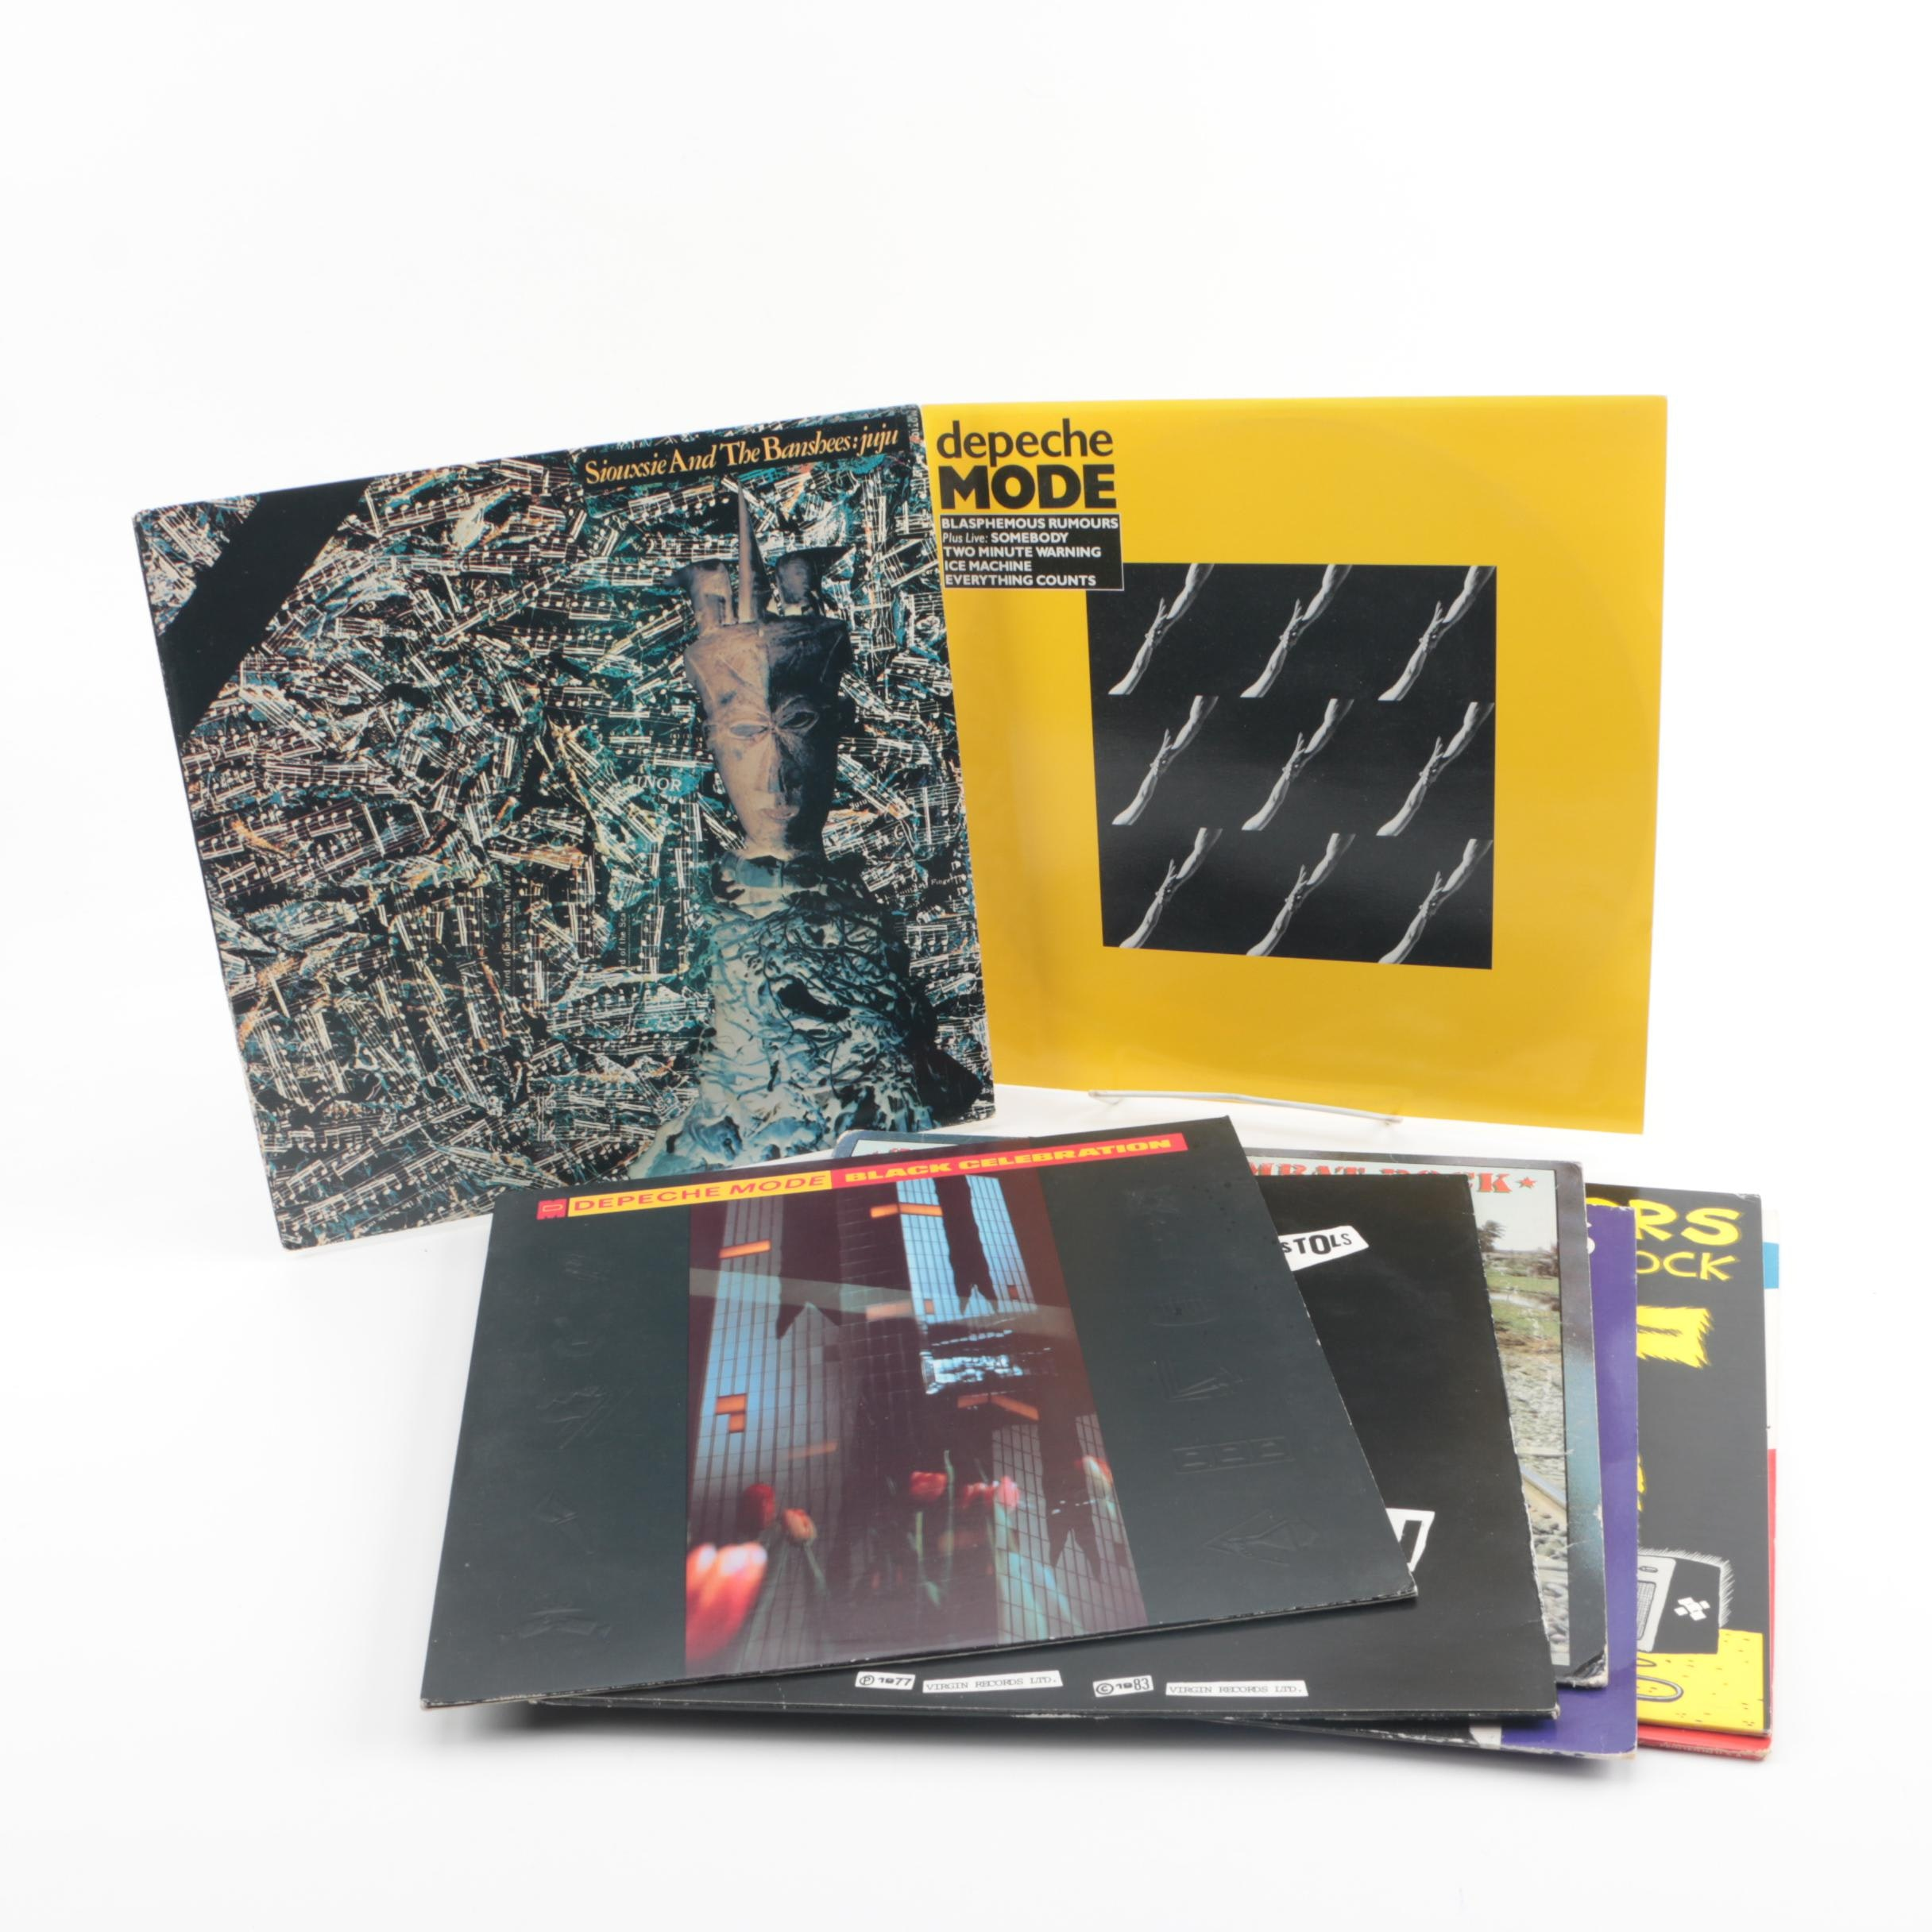 Depeche Mode, The Clash, Kraftwerk, The Smiths and Other Alternative Records